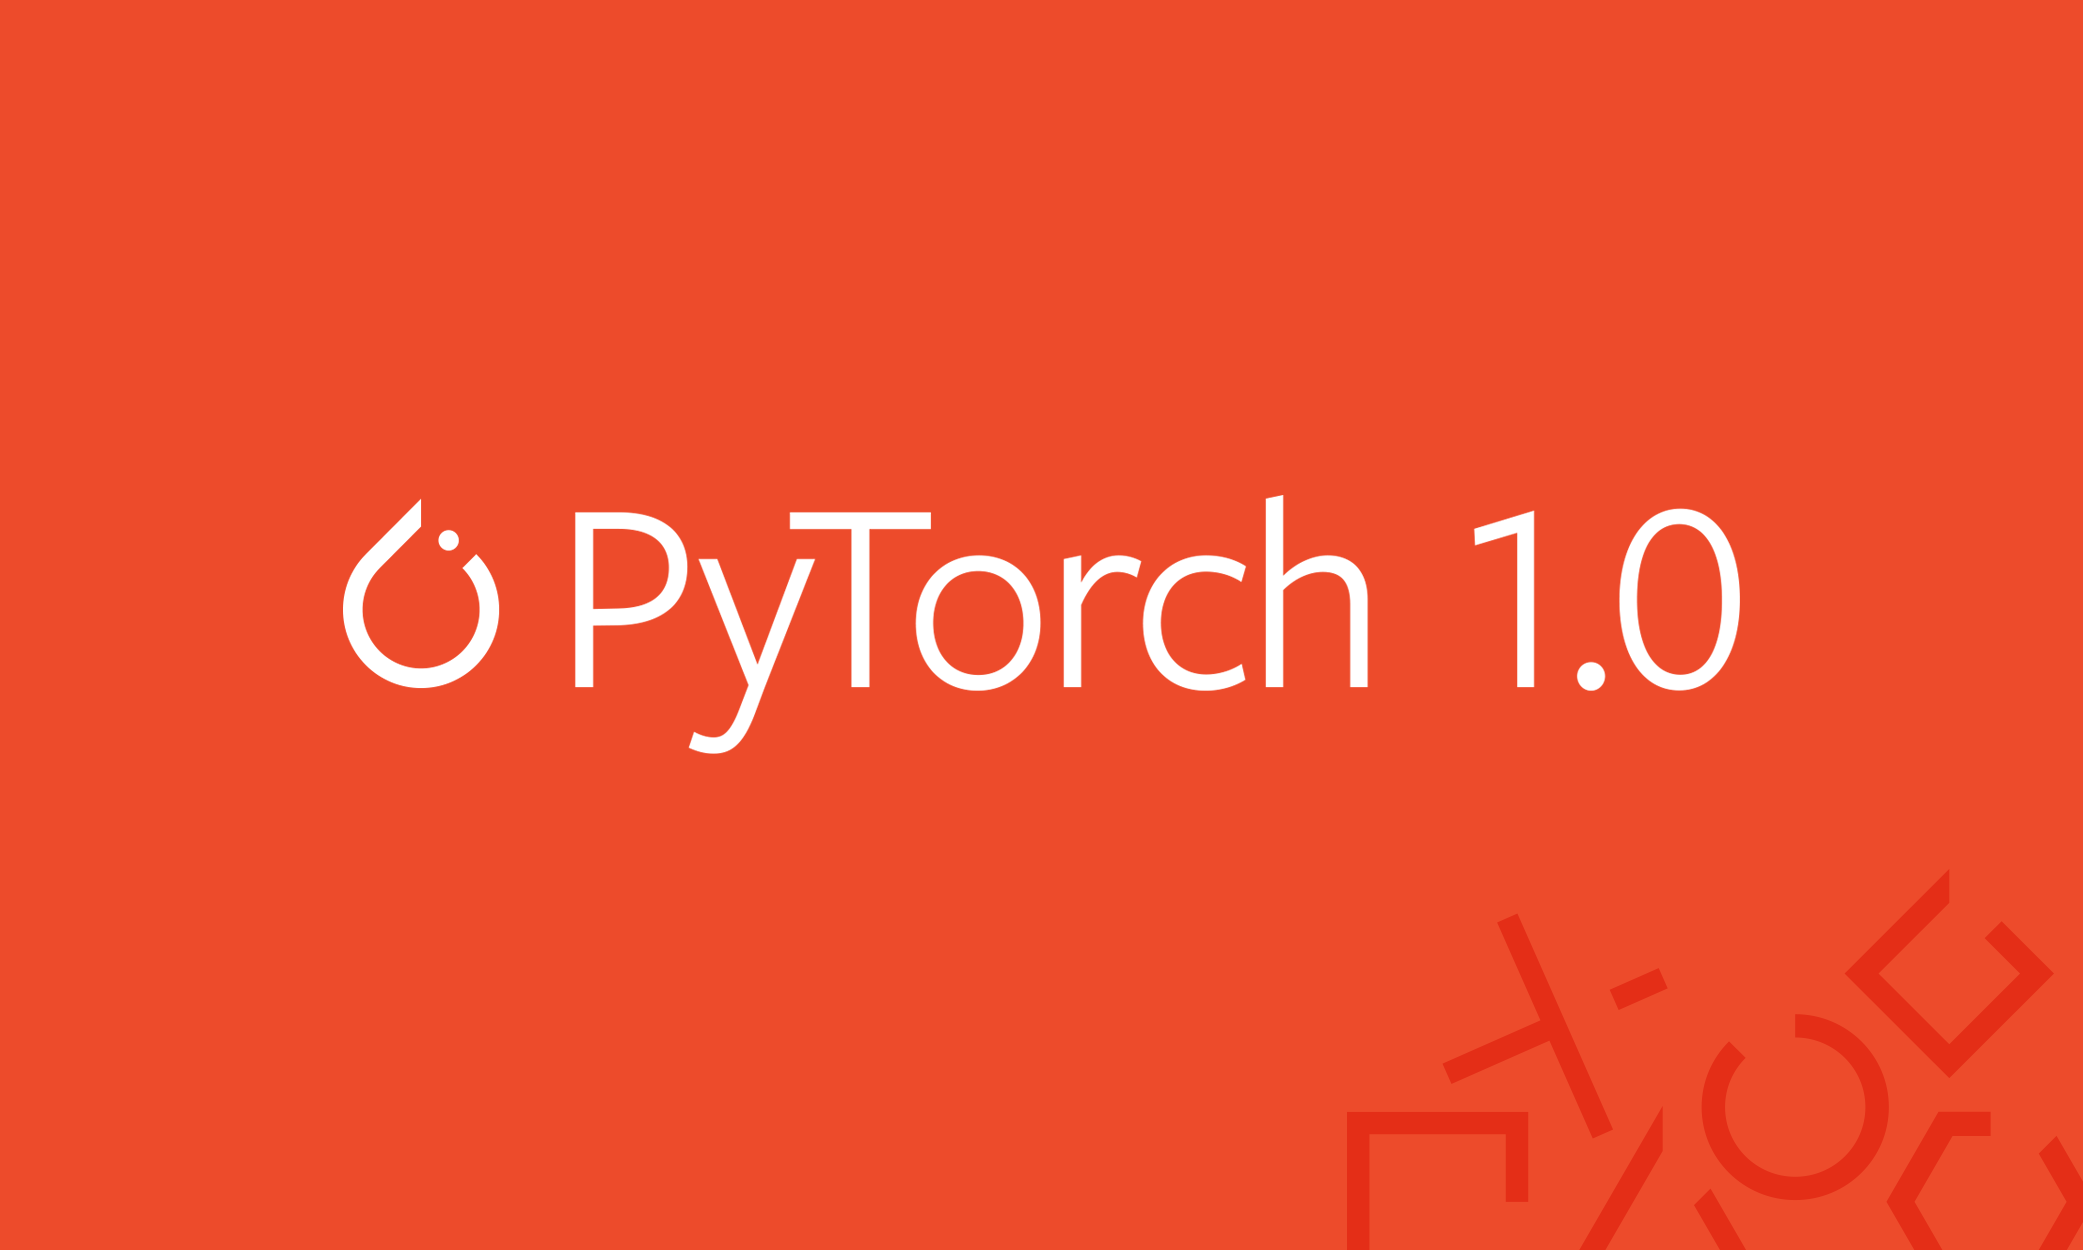 Announcing PyTorch 1 0 for both research and production